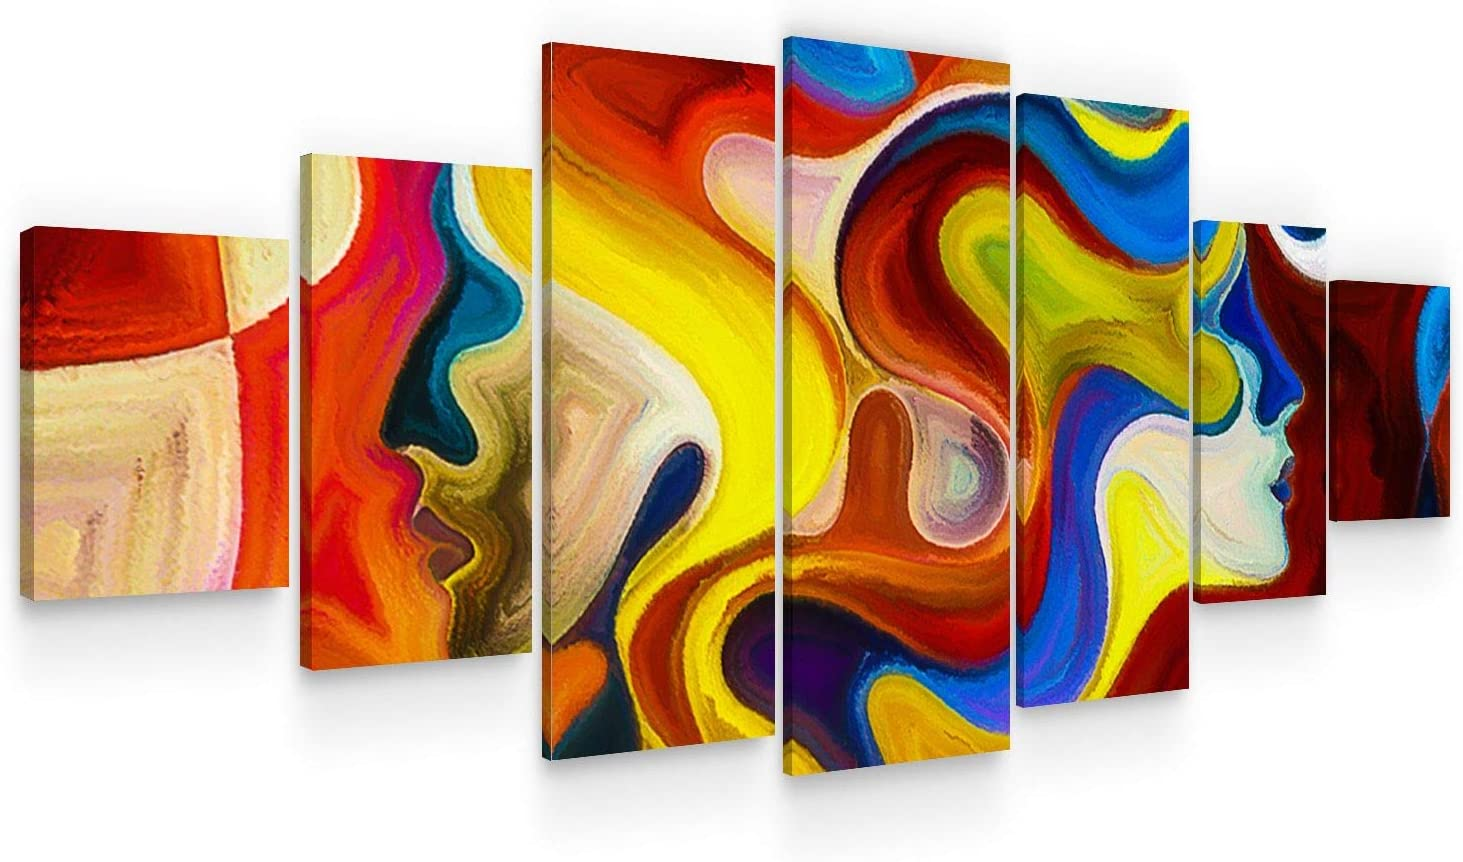 Startonight excellence Large Canvas Wall Quantity limited Art Abstract with Curly Nymphs - H